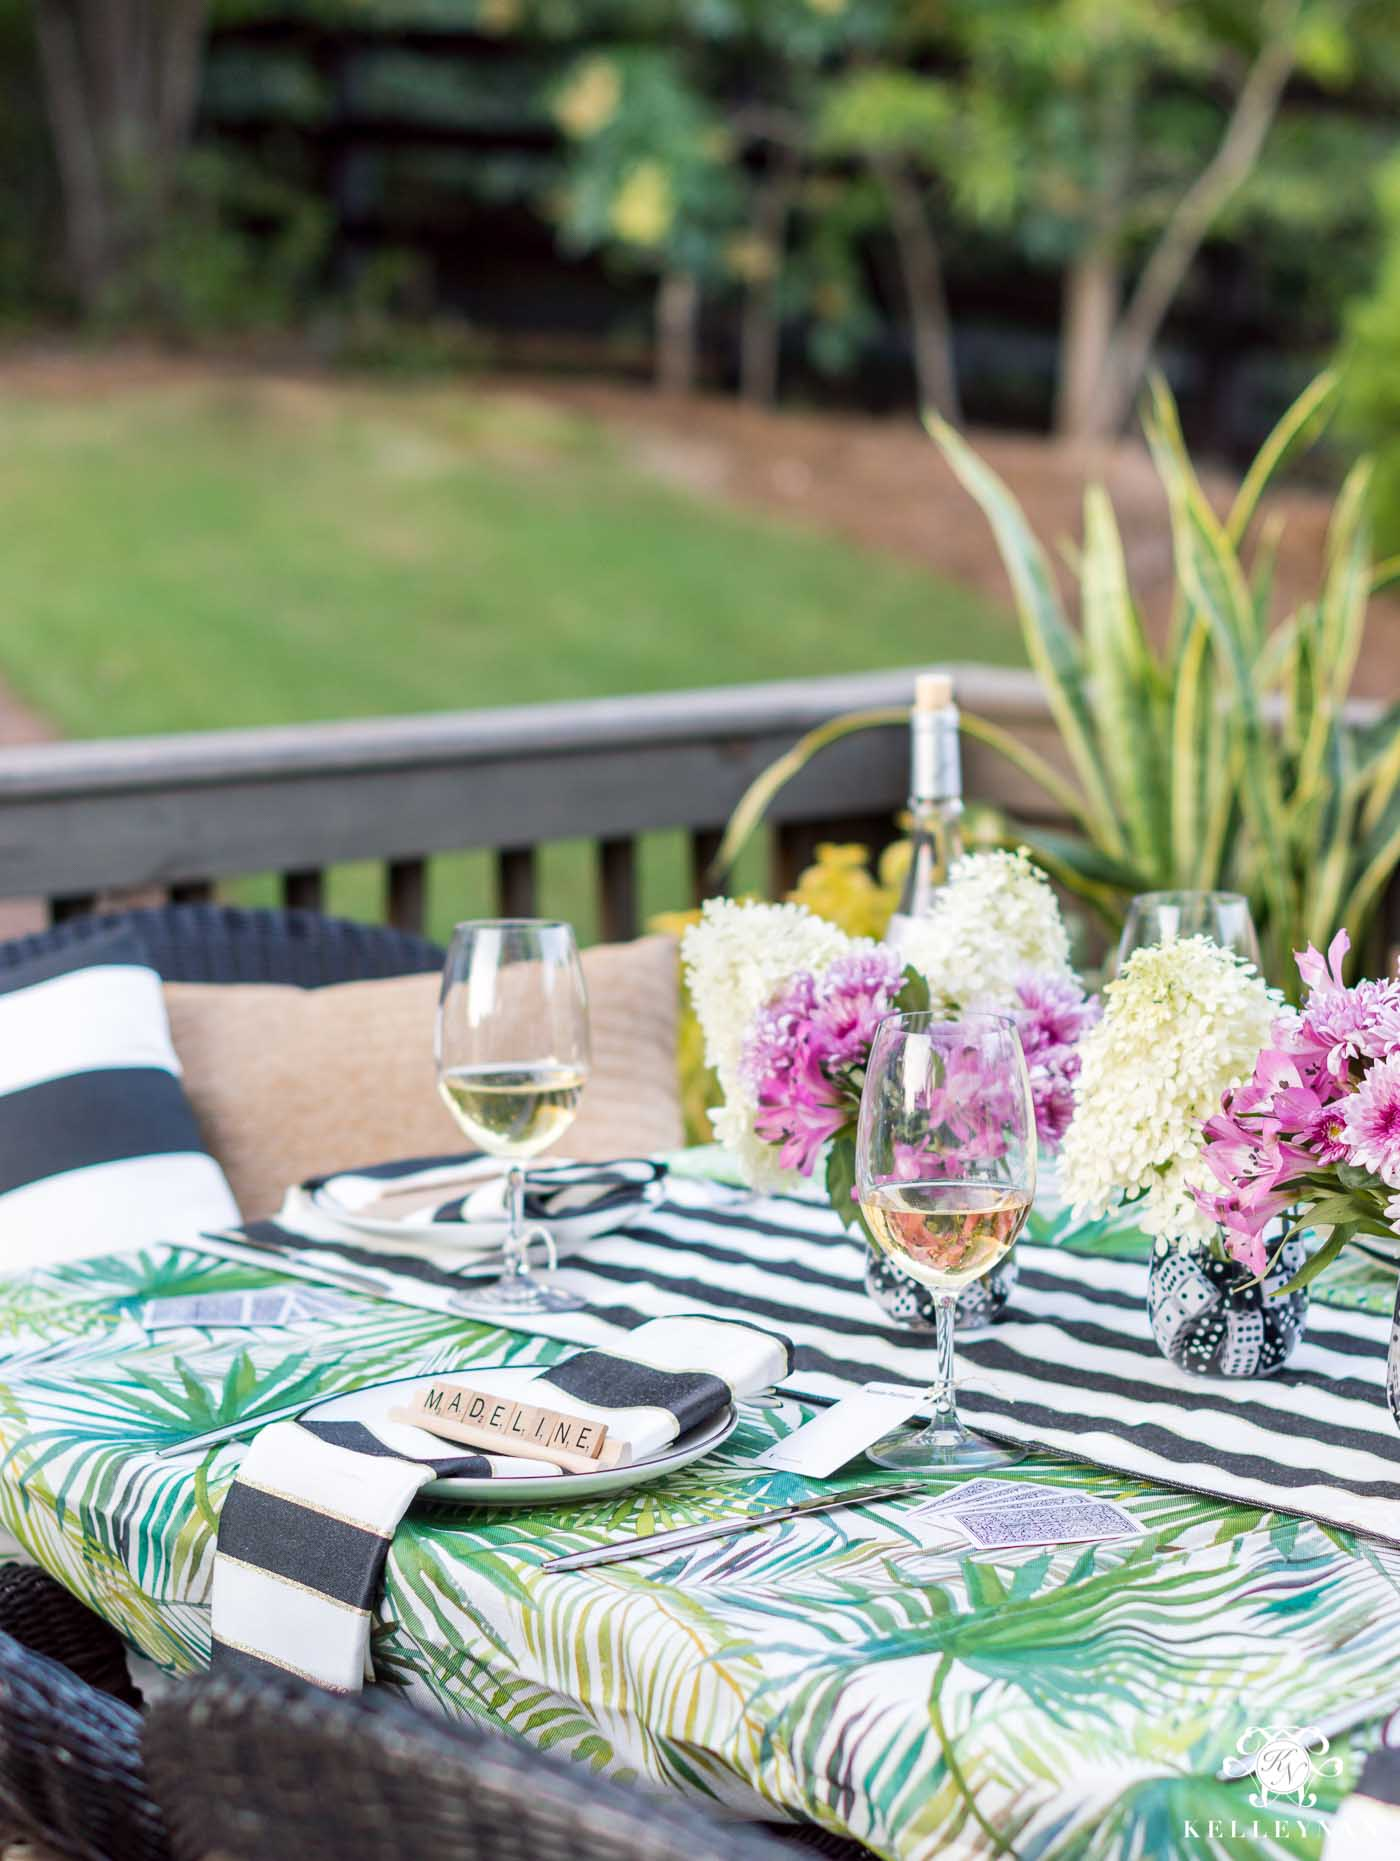 Outdoor dining for game night with lots of hosting ideas